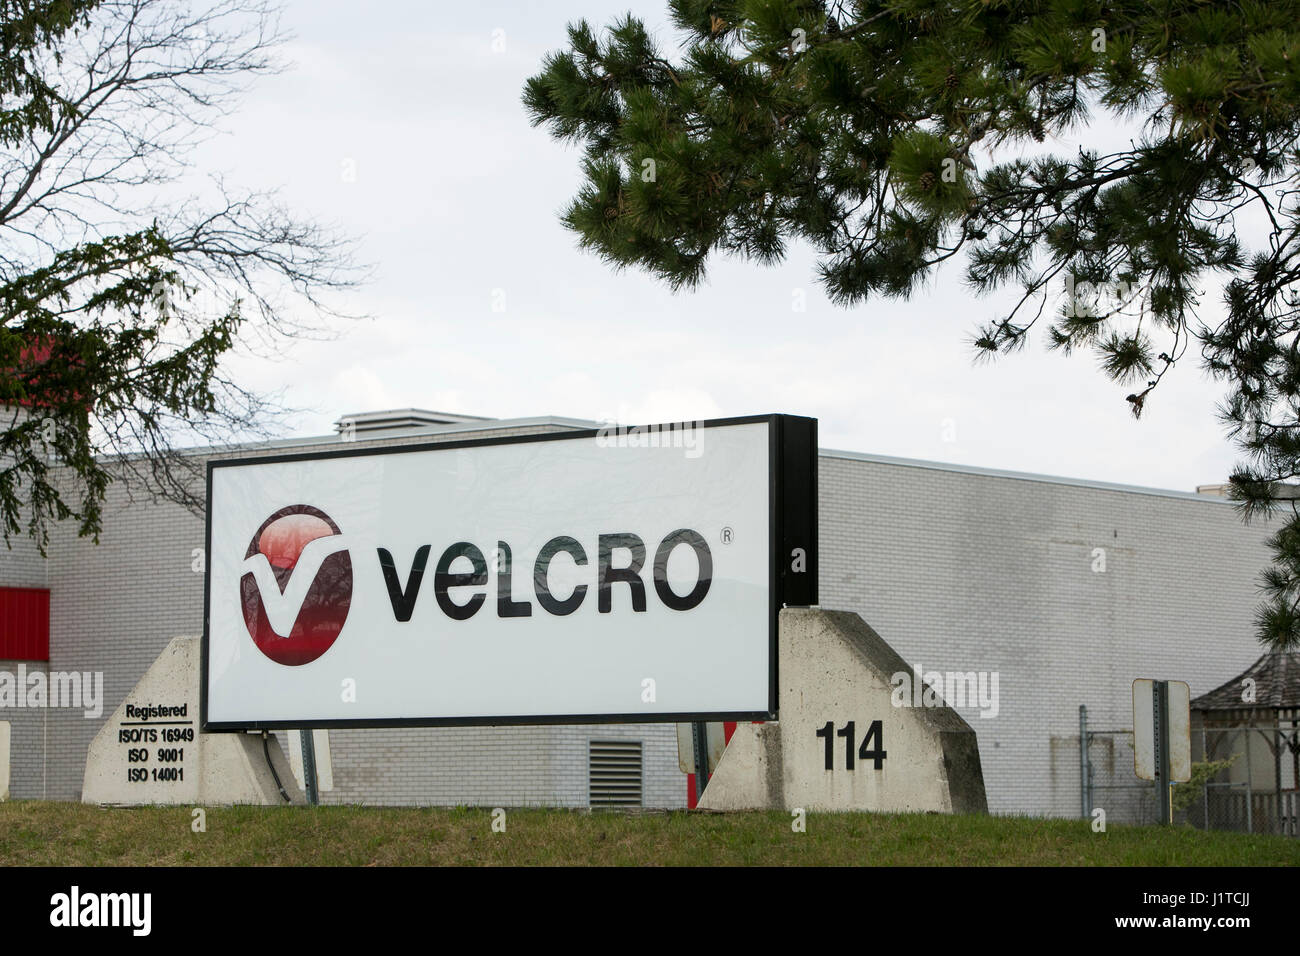 A logo sign outside of a facility occupied by the Velcro Companies in Brampton, Ontario, Canada, on April 16, 2017. - Stock Image